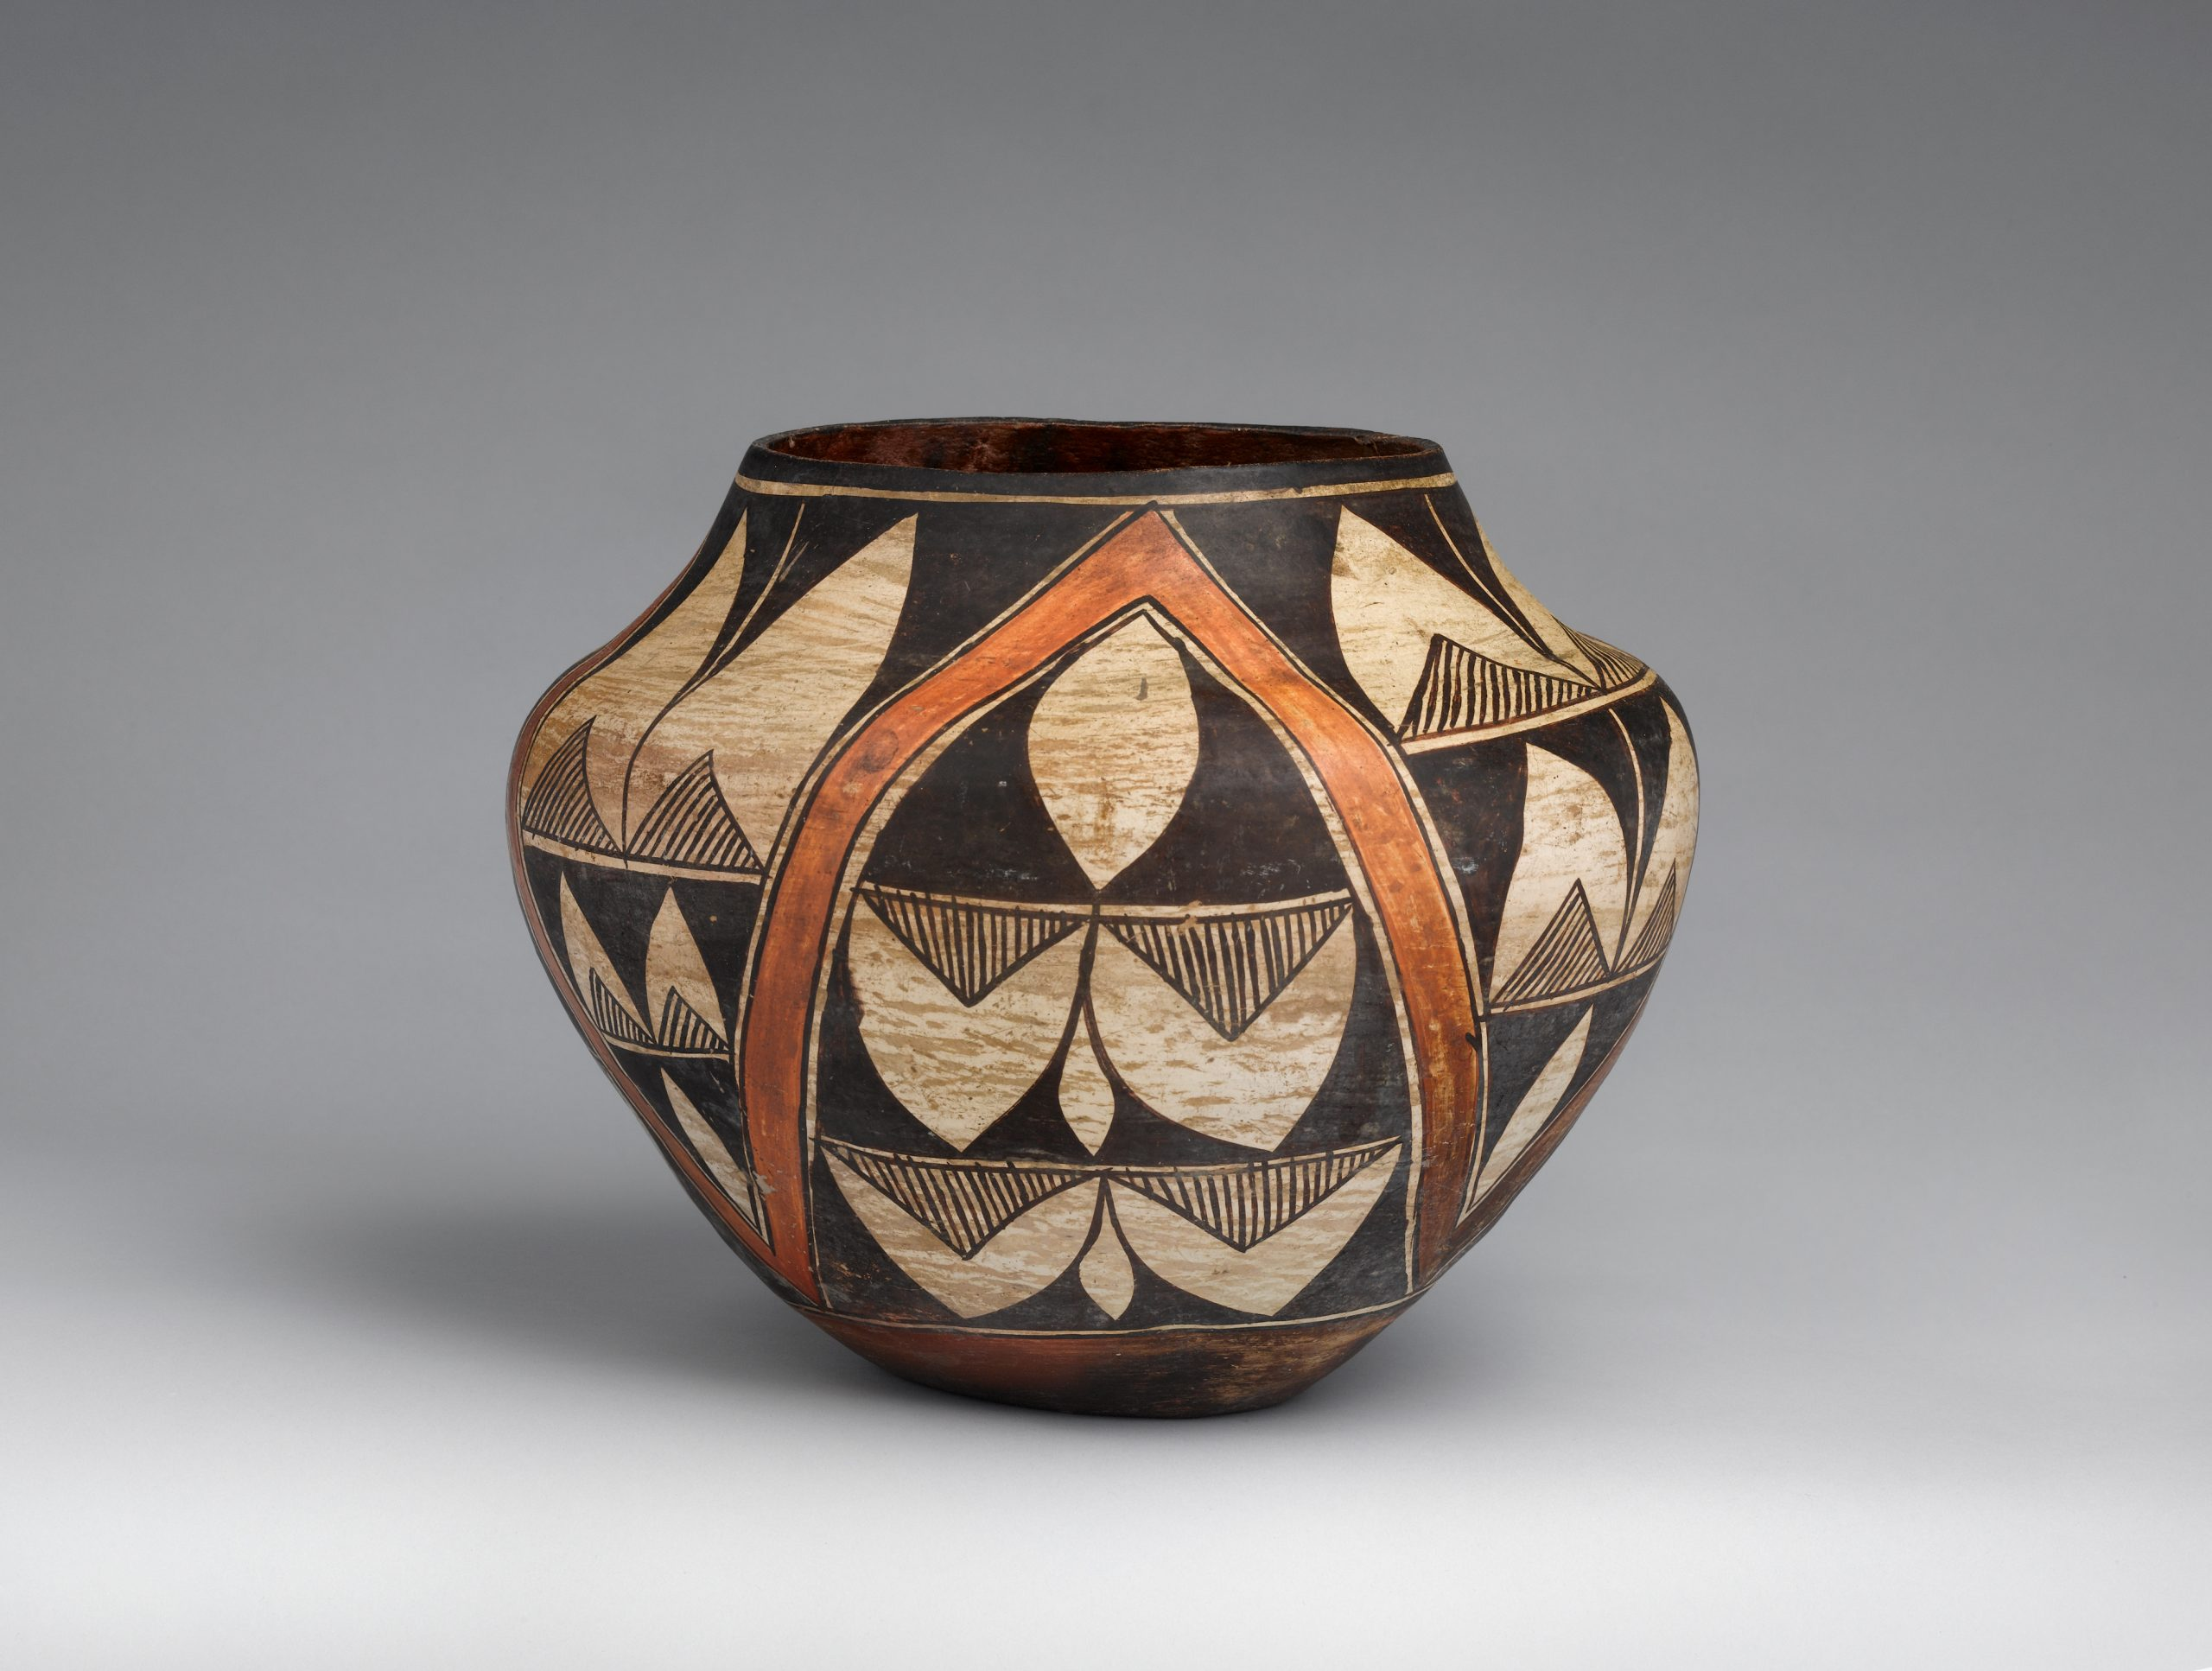 Large white vessel decorated with gray geometric patterns with indentations for holding.